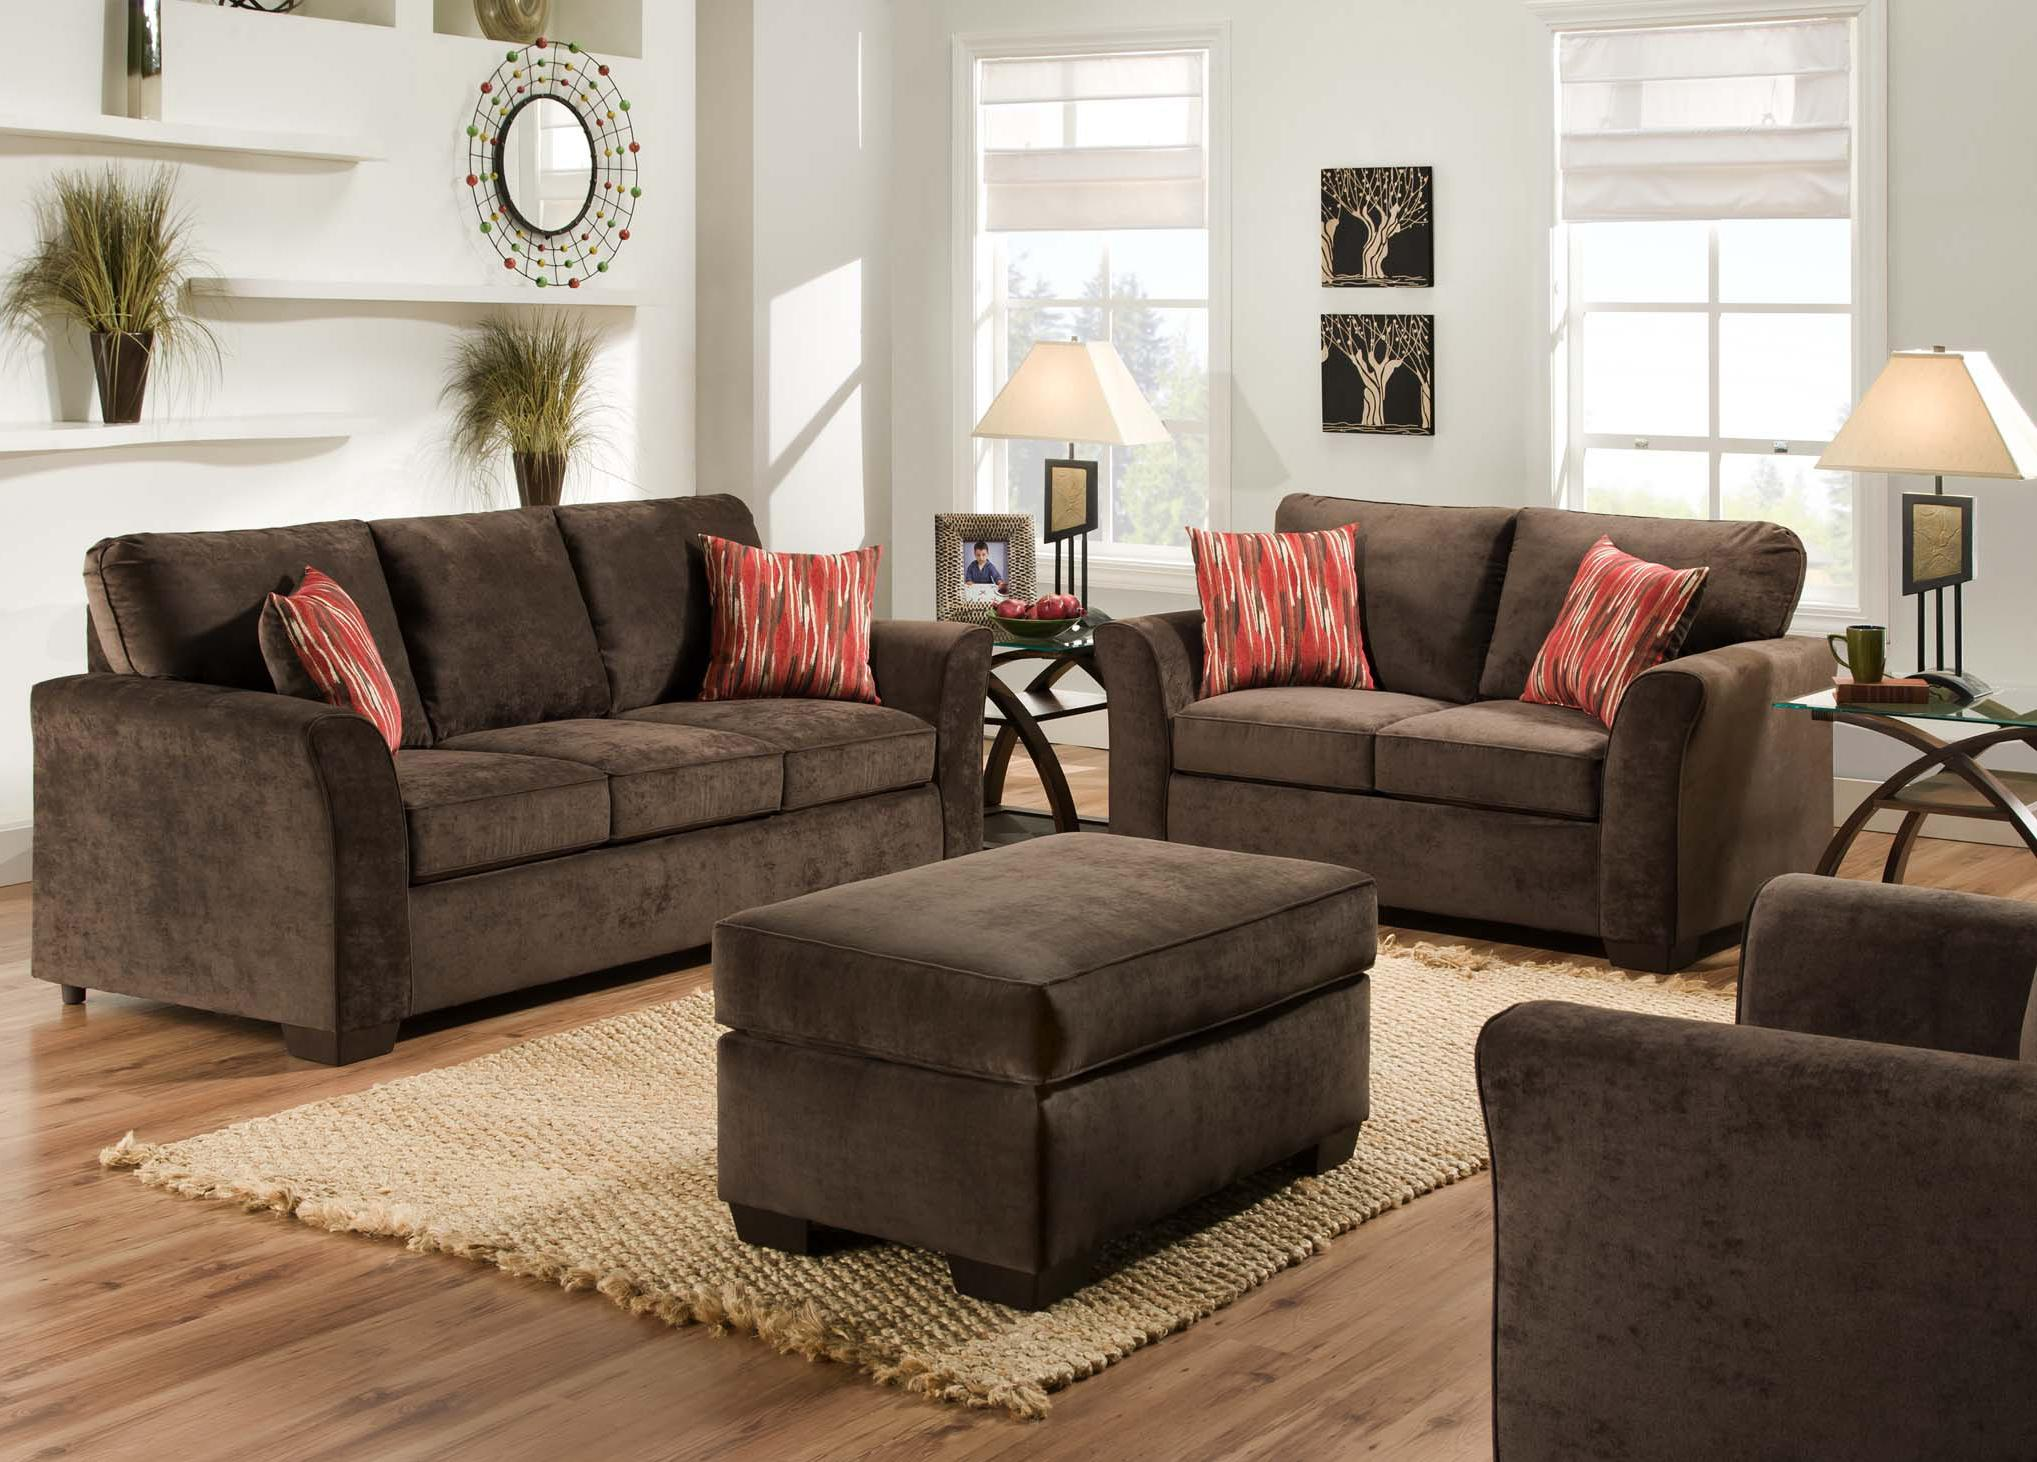 furniture groupings living room american furniture 7670 stationary living room 13236